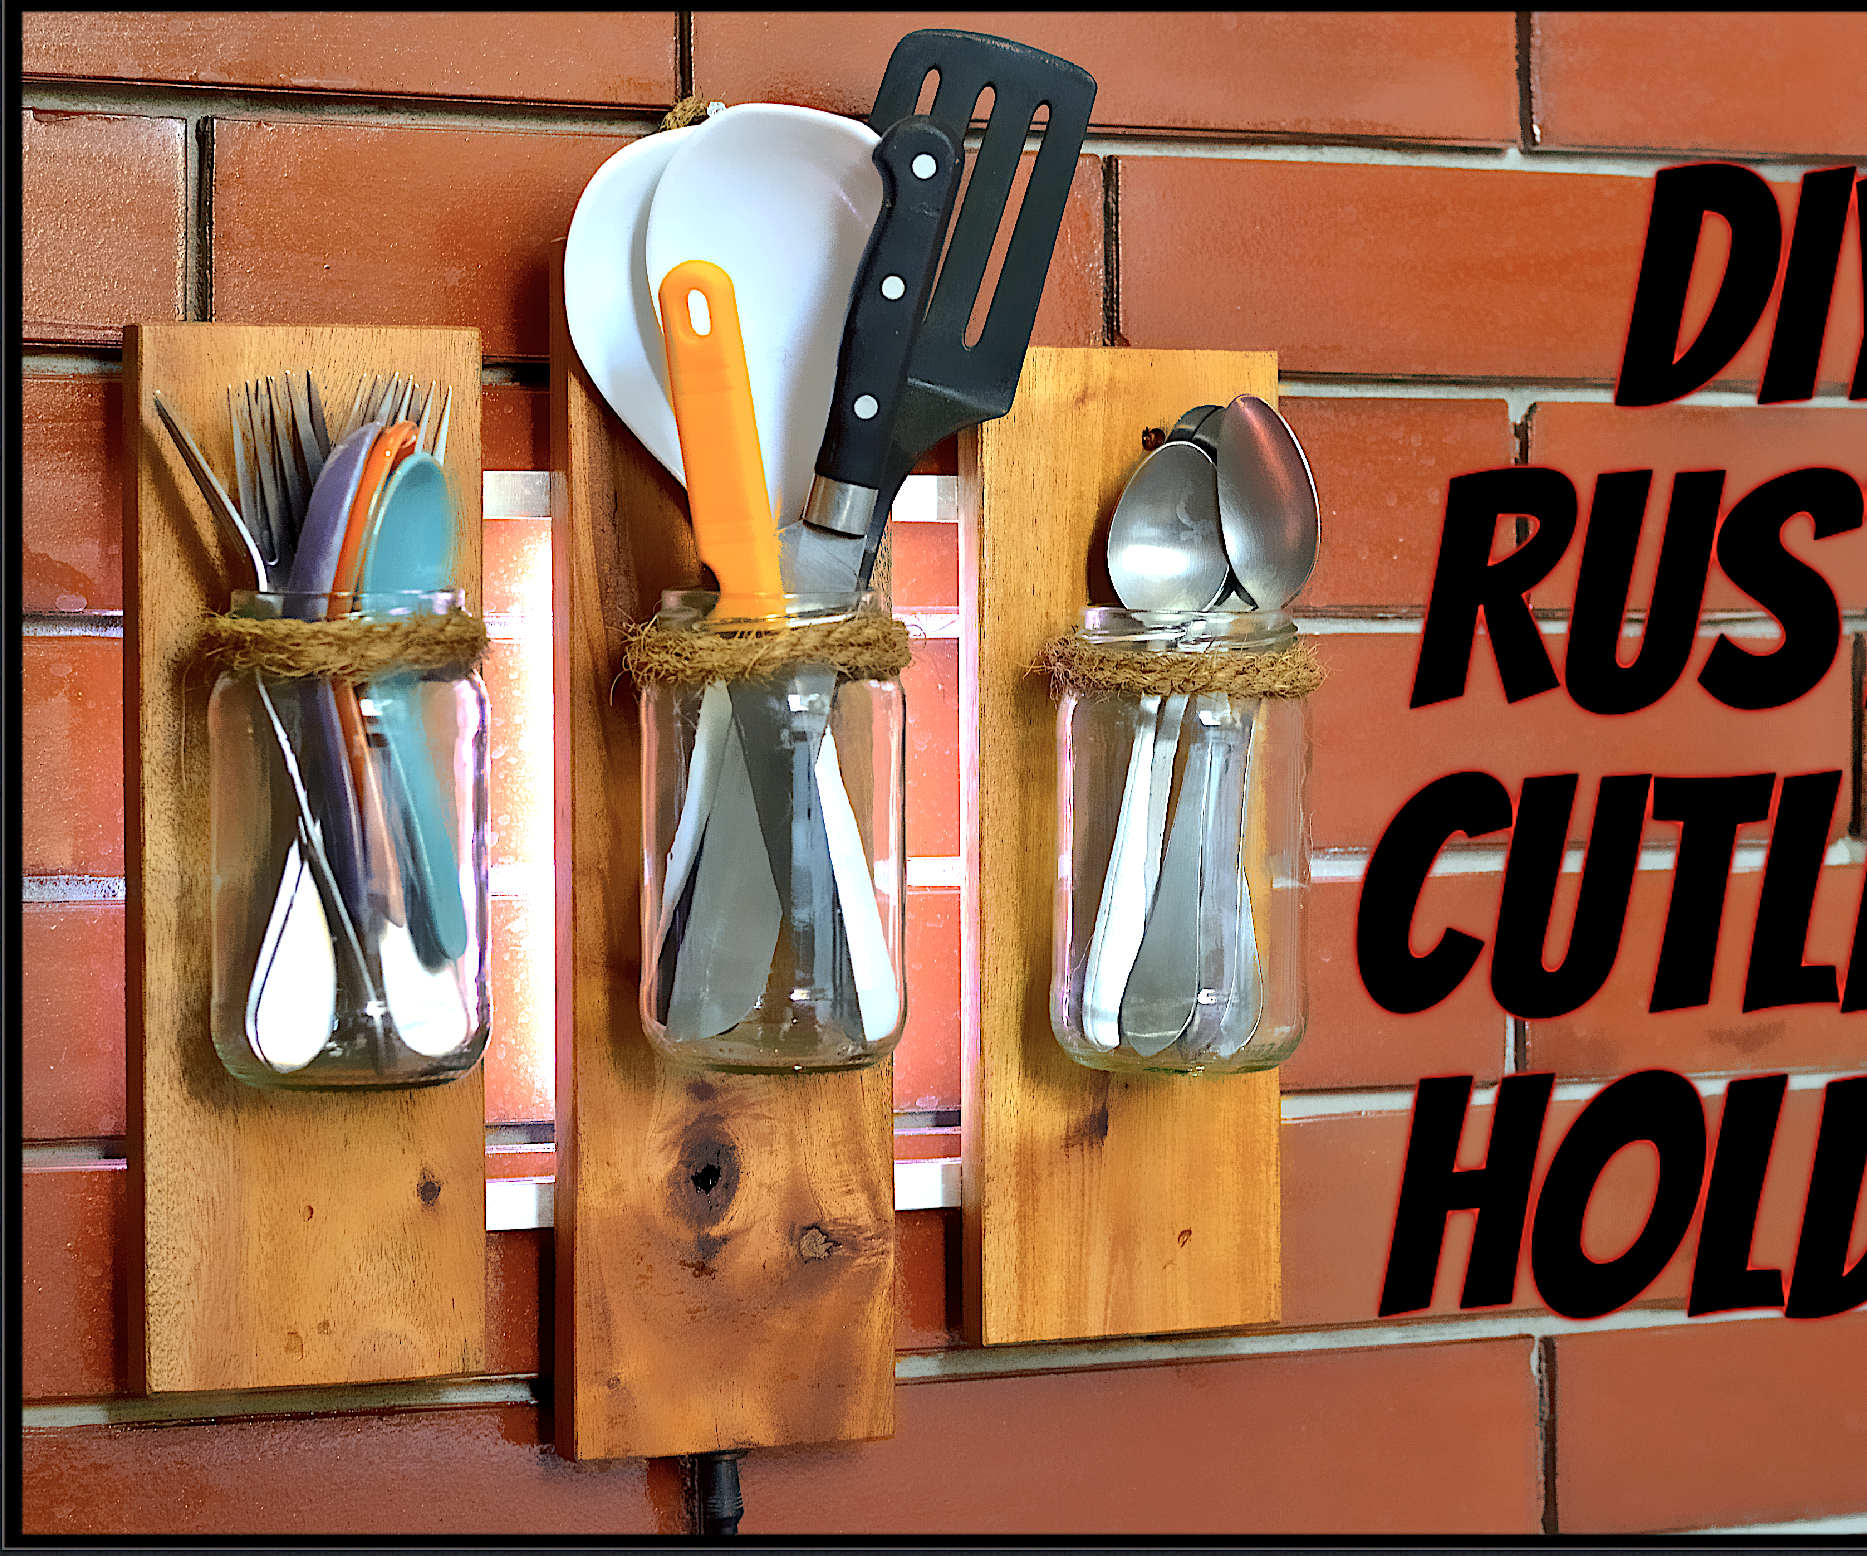 DIY Rustic Cutlery Holder